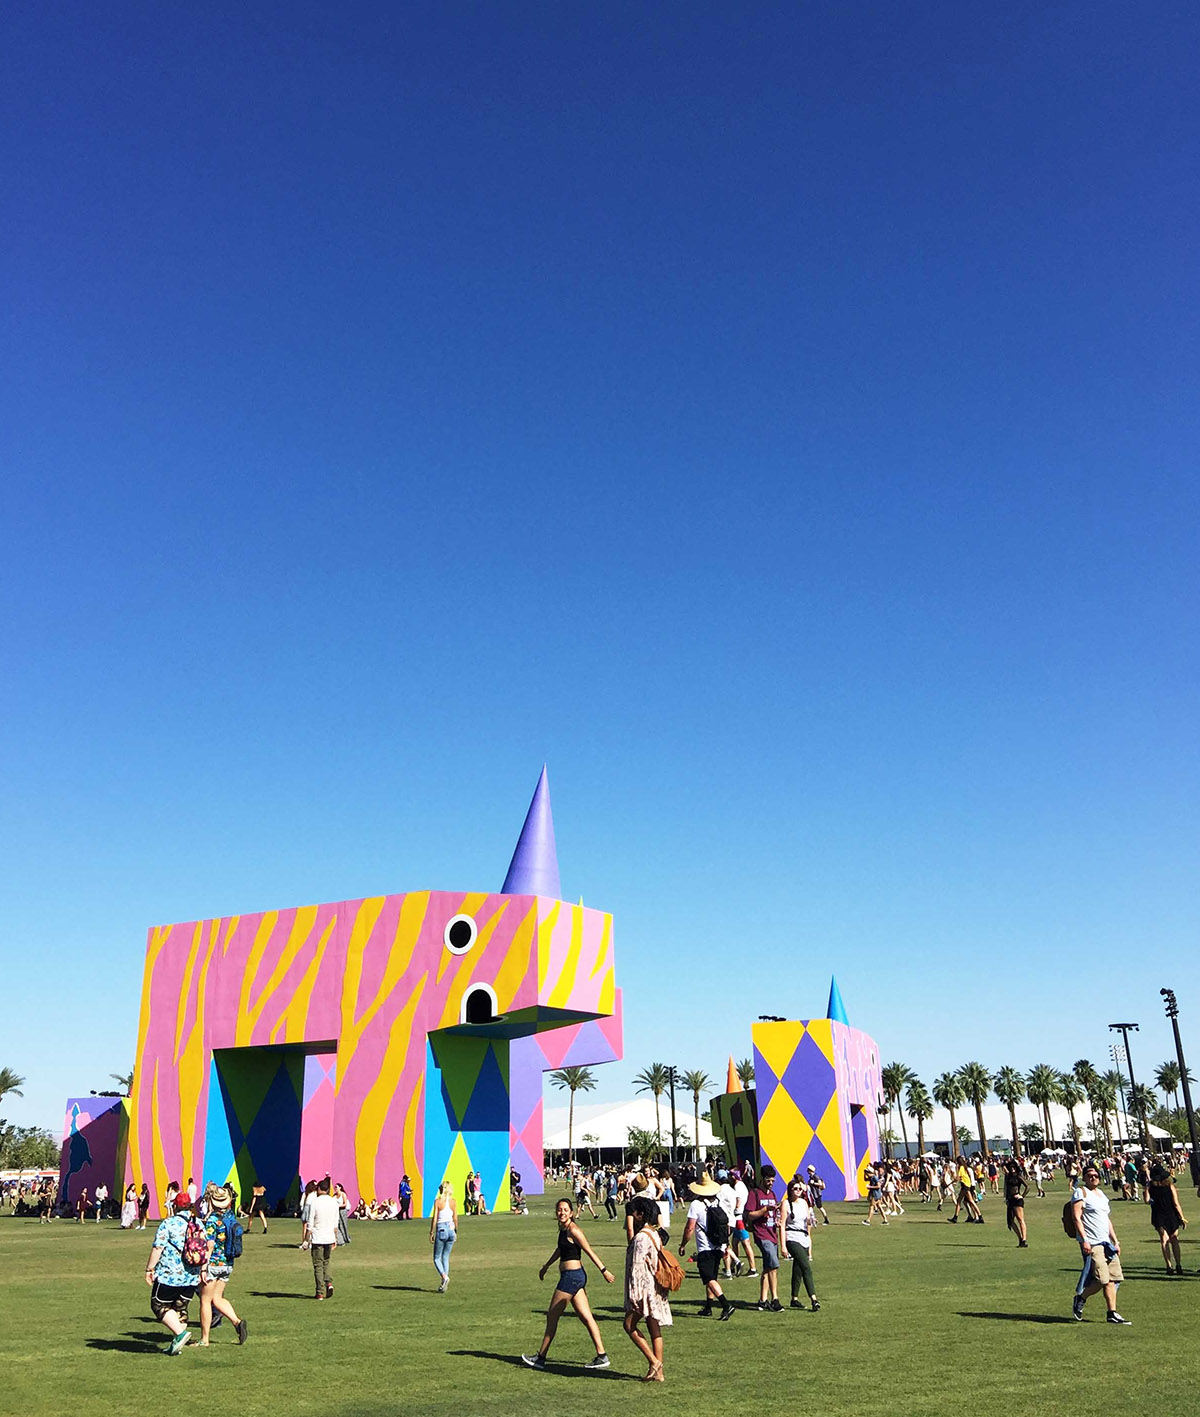 Coachella Valley Music and Art Festival 2017